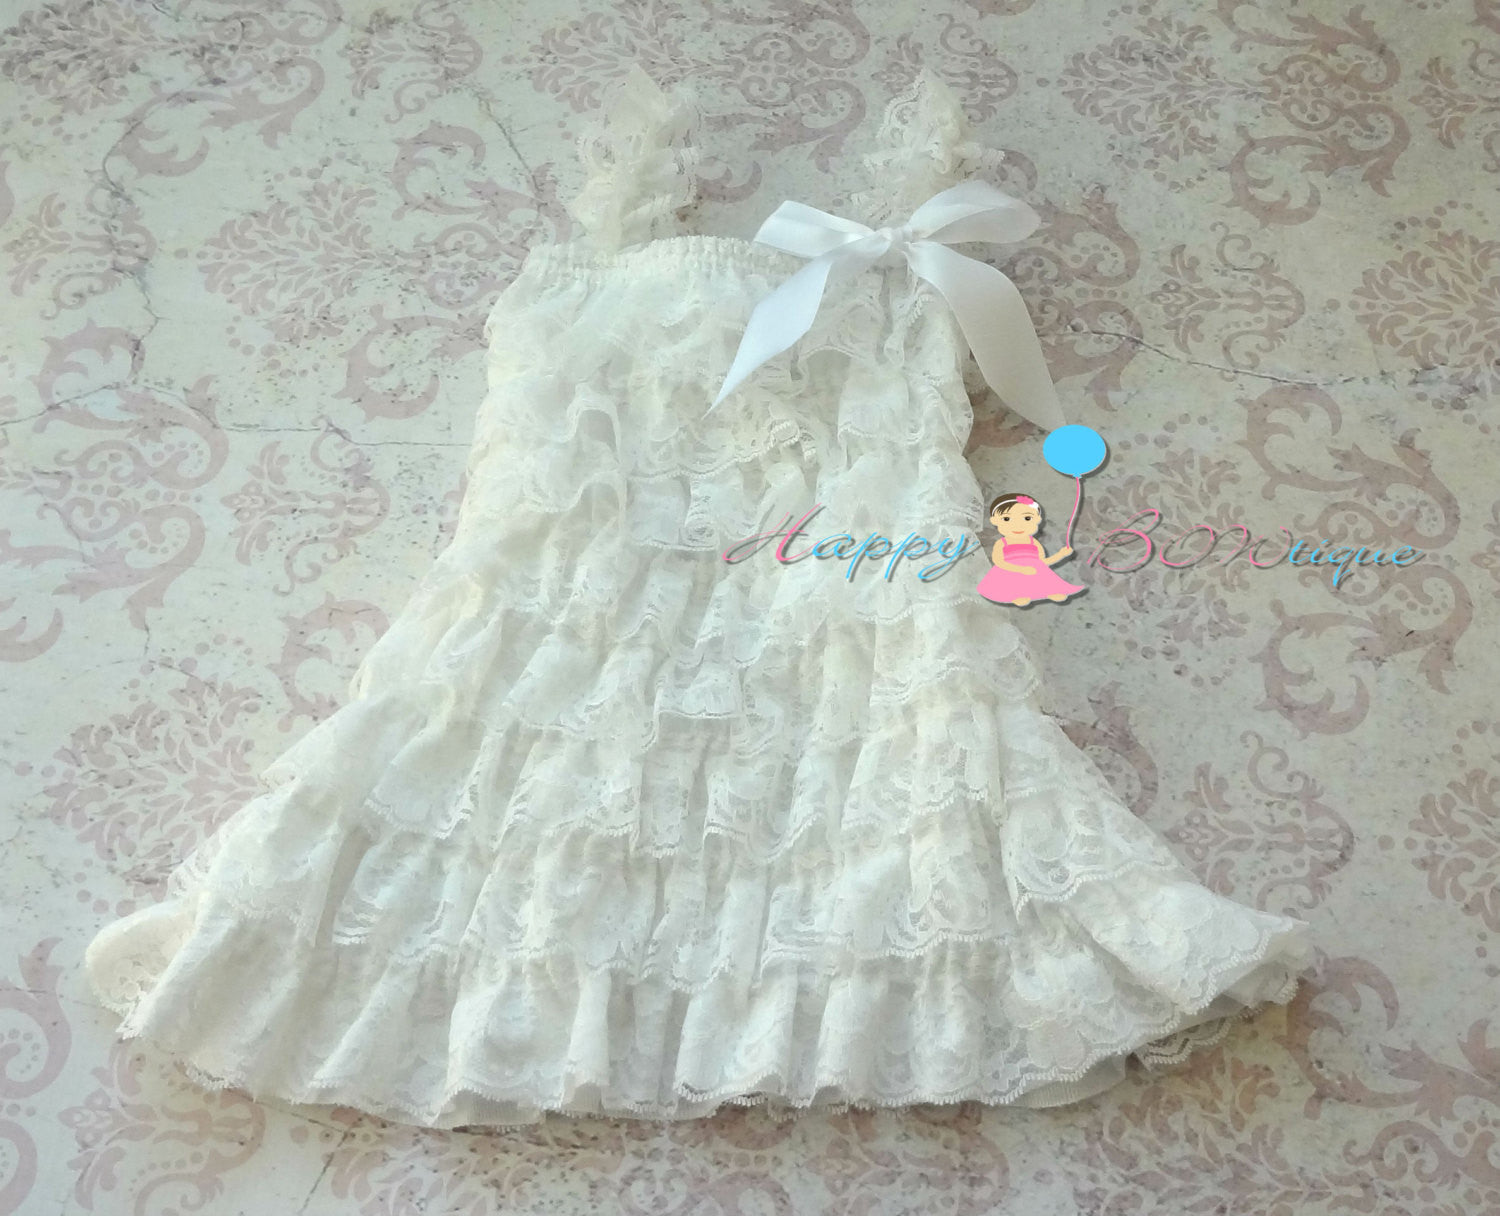 Girl Victorian White Lace Dress ~ Baby Girl Baptism White Dress - Happy BOWtique - children's clothing, Baby Girl clothing